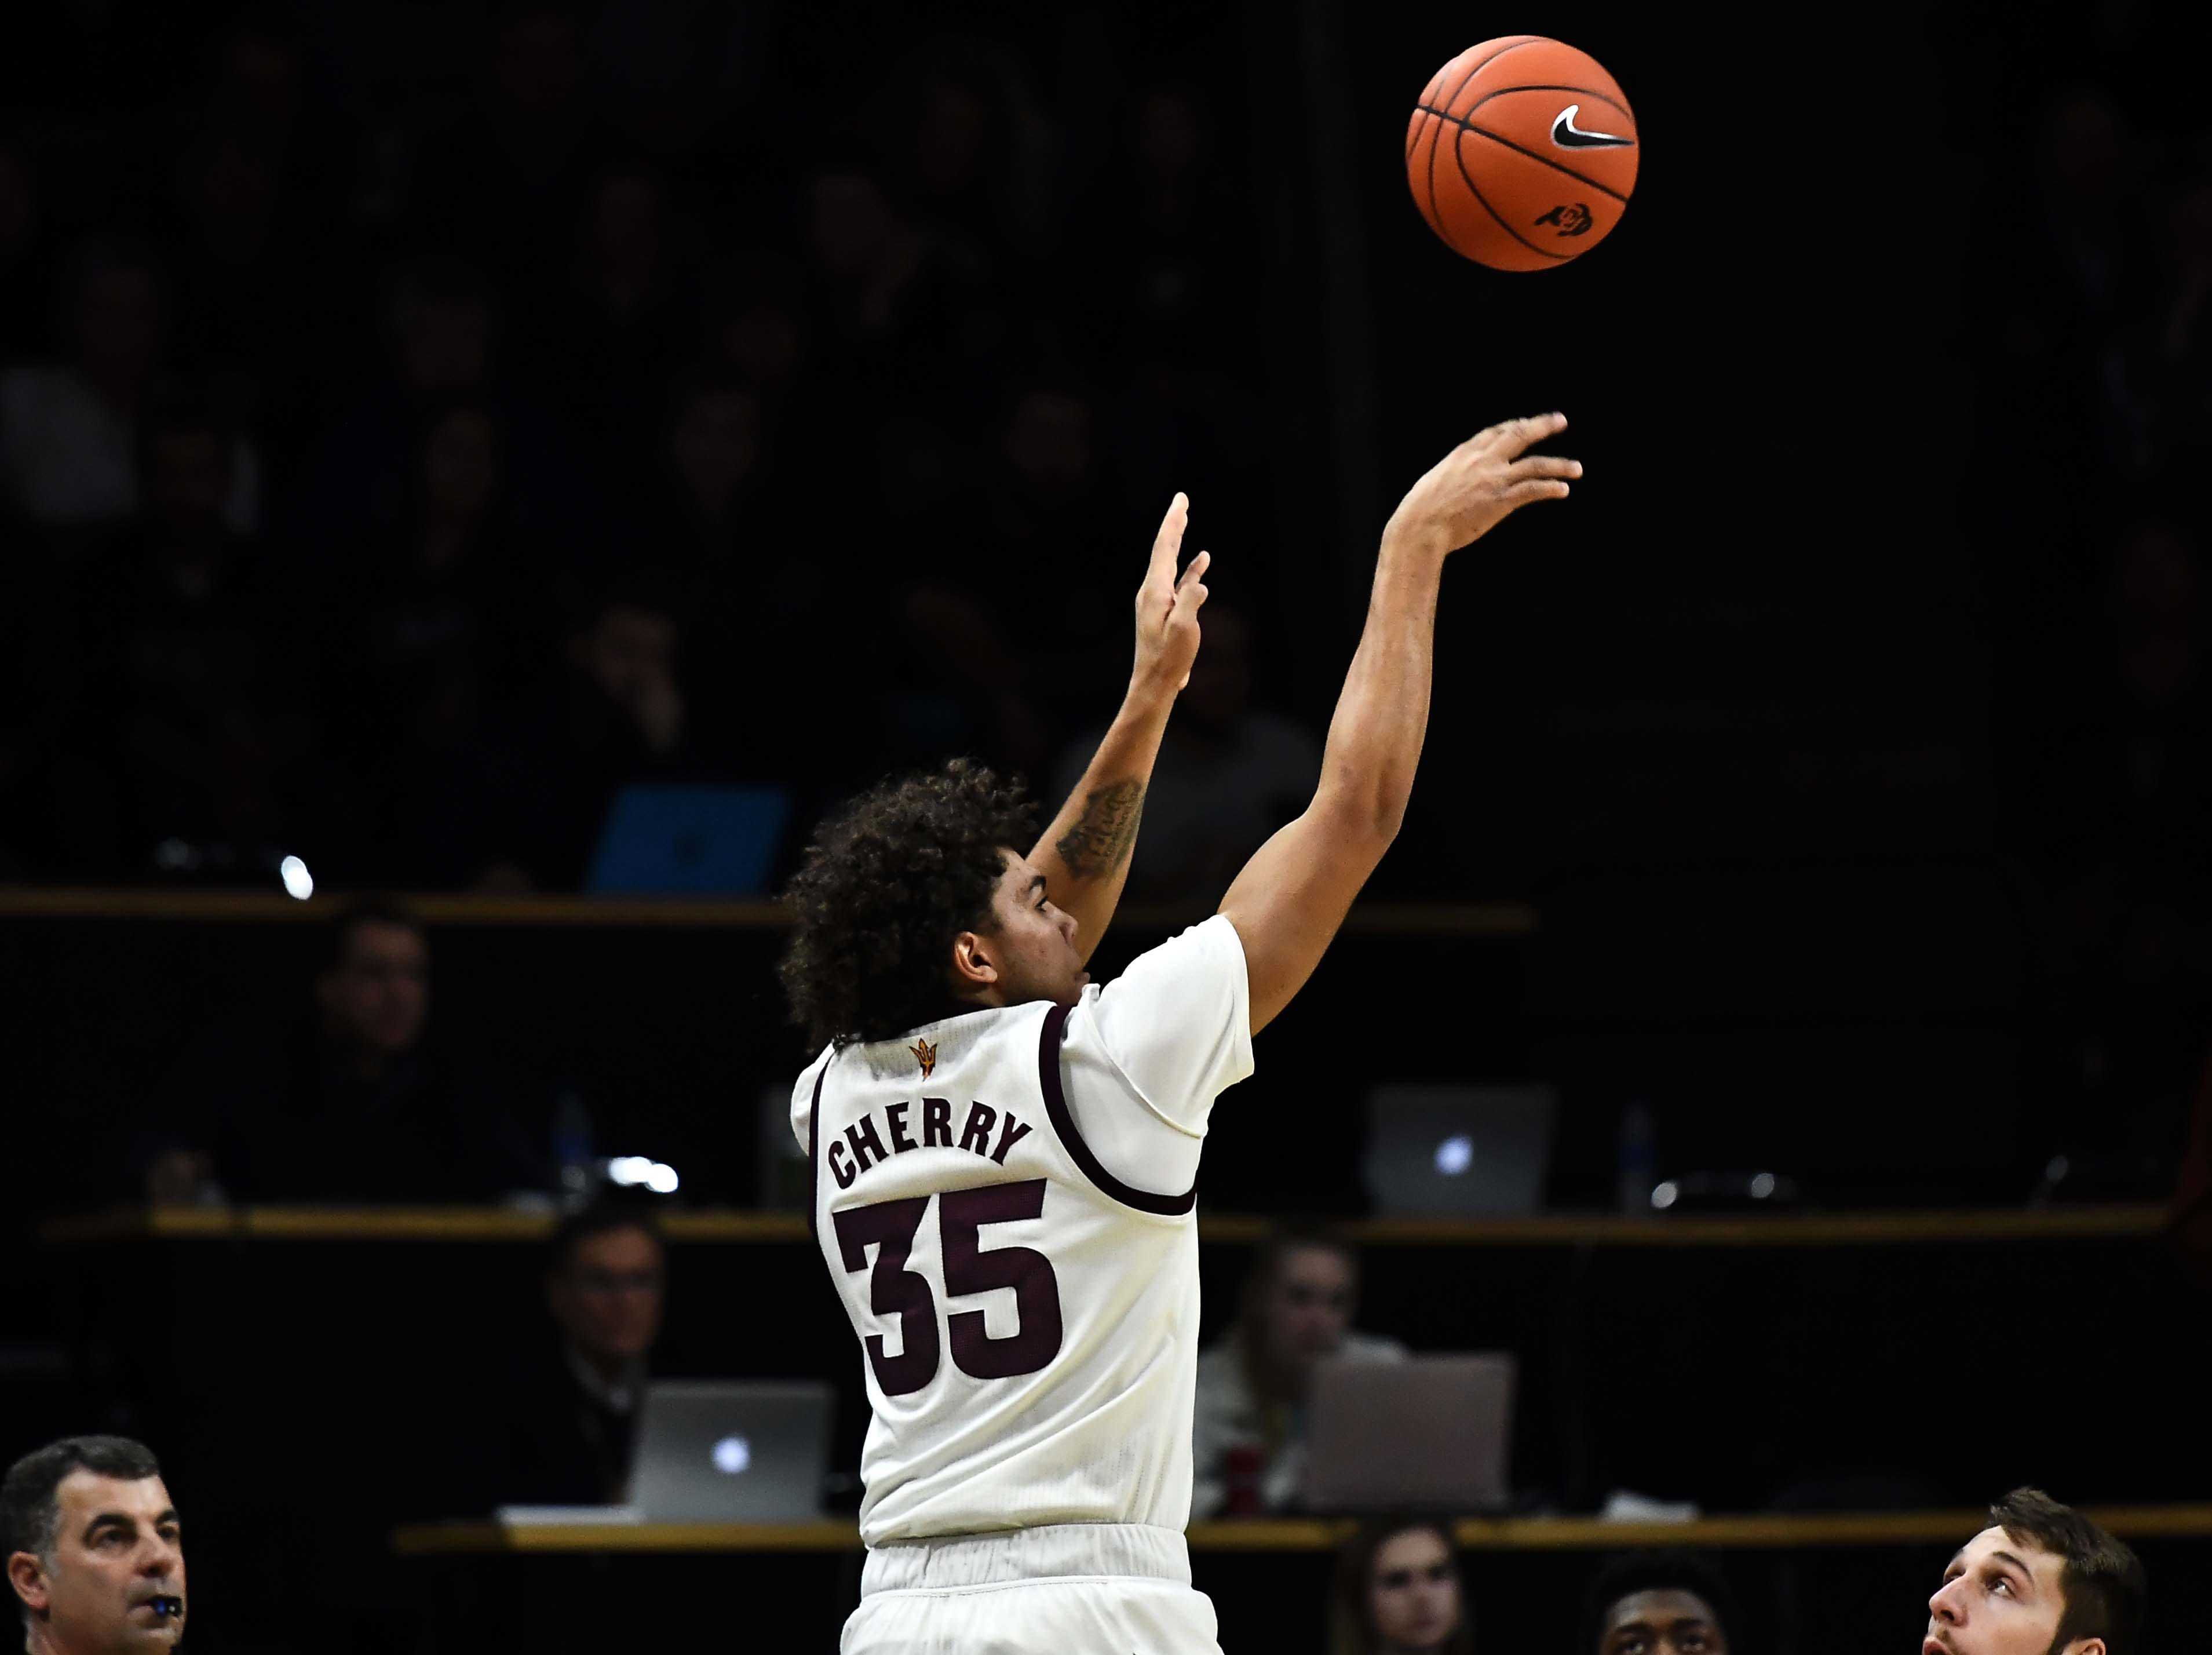 Feb 13, 2019; Boulder, CO, USA; Arizona State Sun Devils forward Taeshon Cherry (35) releases a shot in the first half against the Colorado Buffaloes at the CU Events Center. Mandatory Credit: Ron Chenoy-USA TODAY Sports